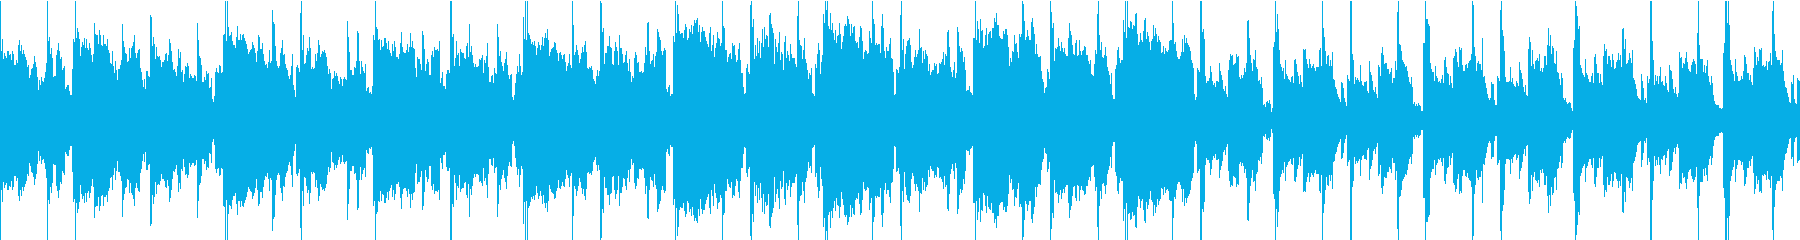 Halloween: Party, Surprise, Dancing, Trick or treat's reproduced waveform